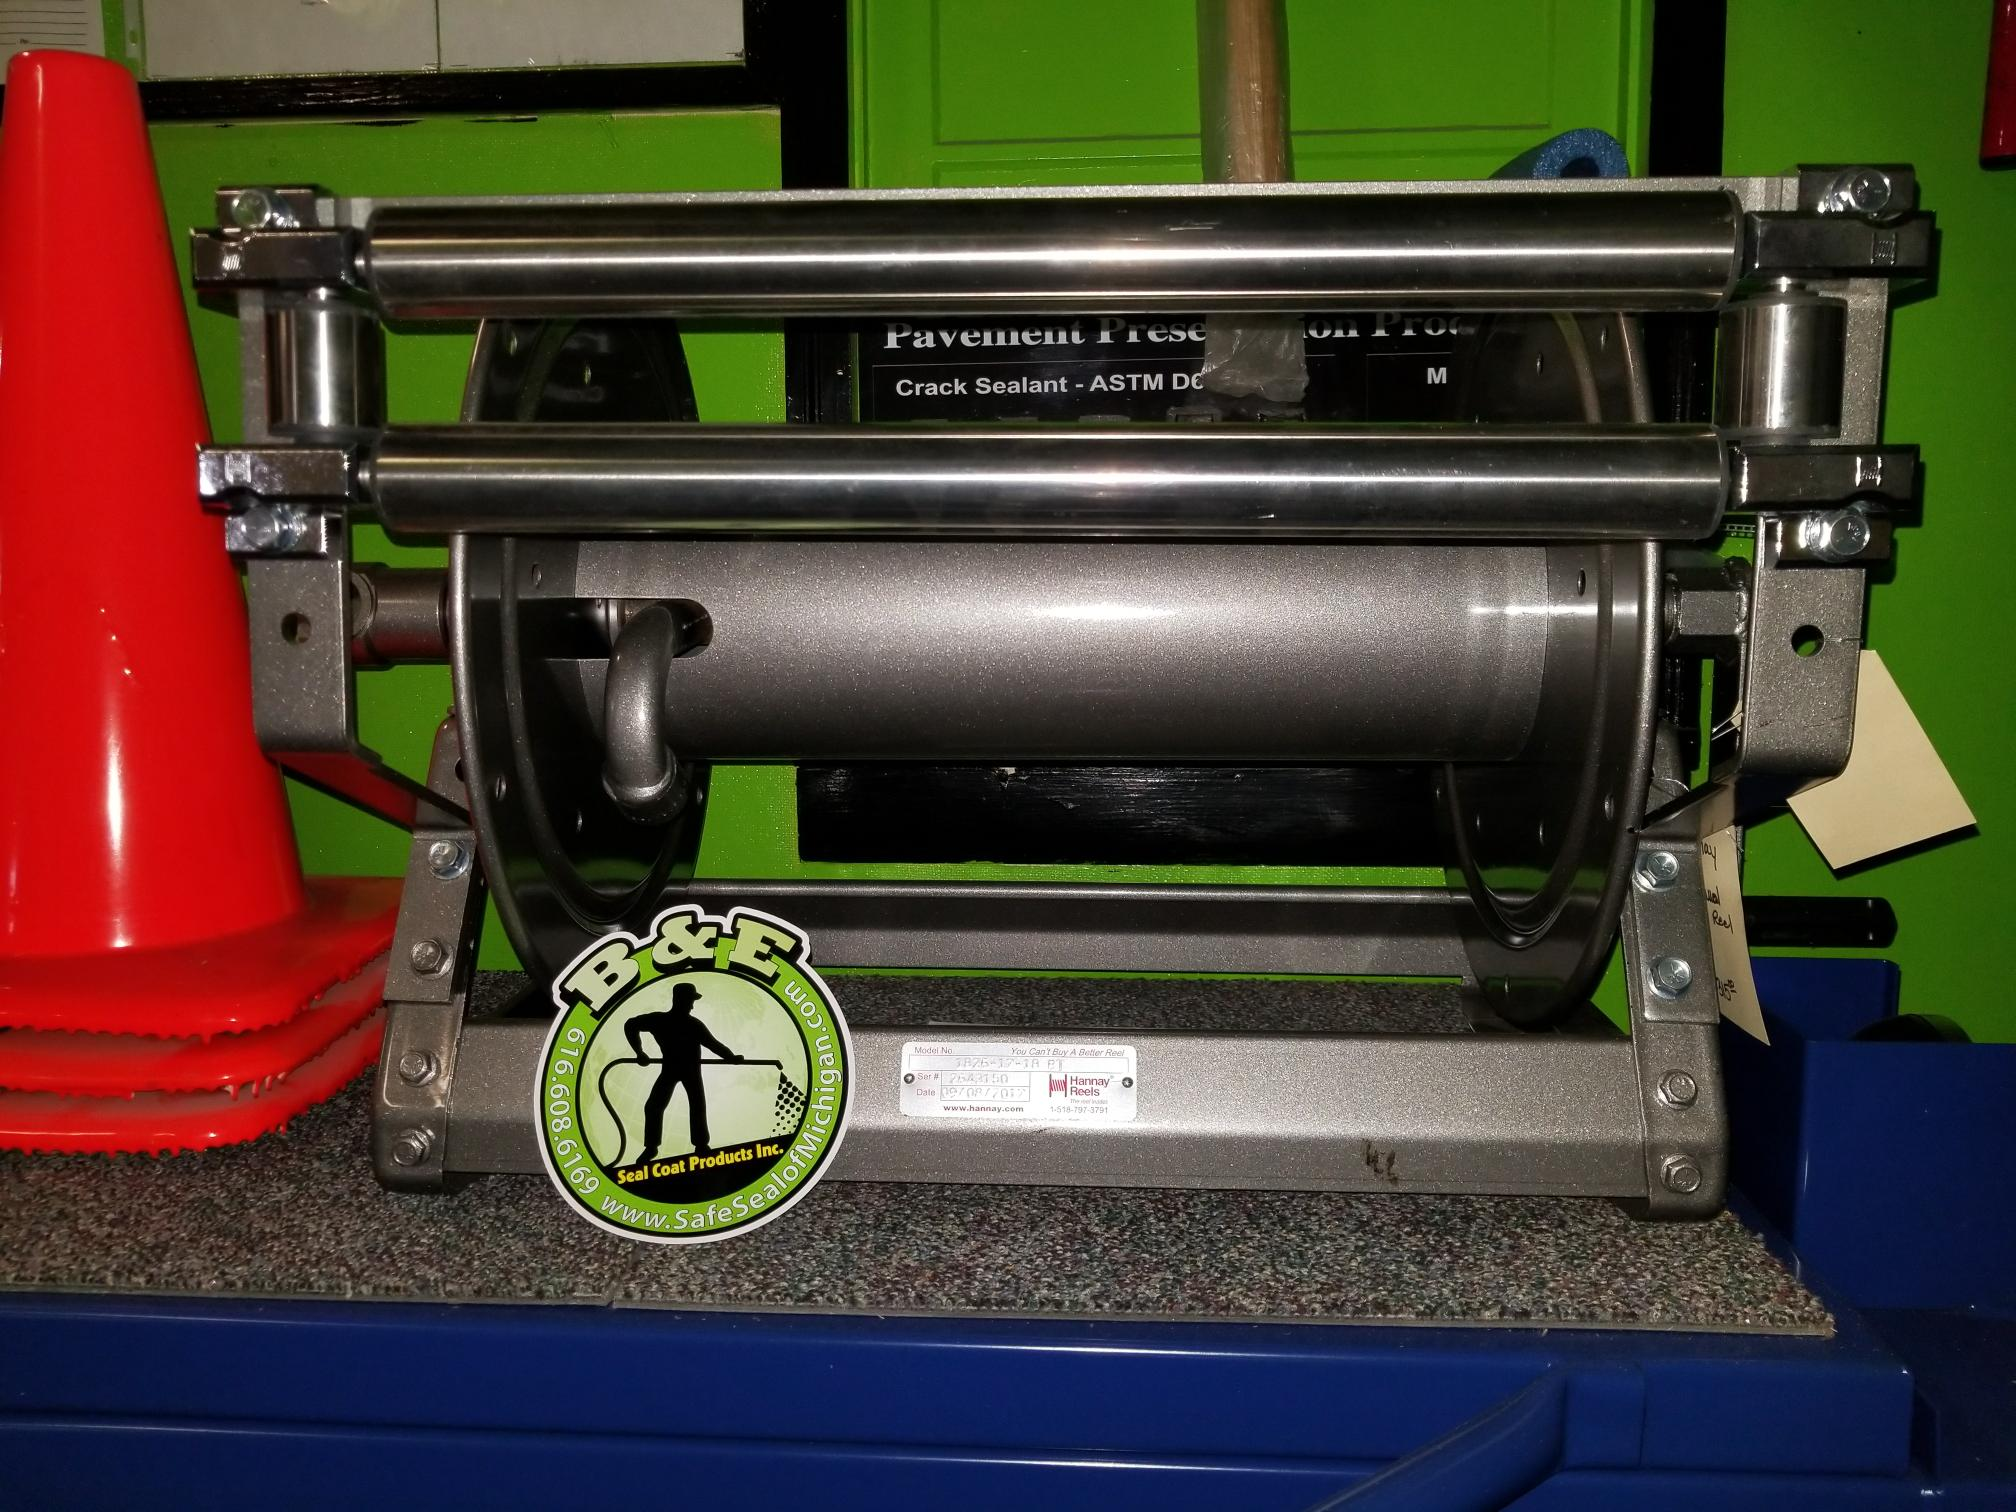 Hannay C2 4-Way Roller Guide Assembly